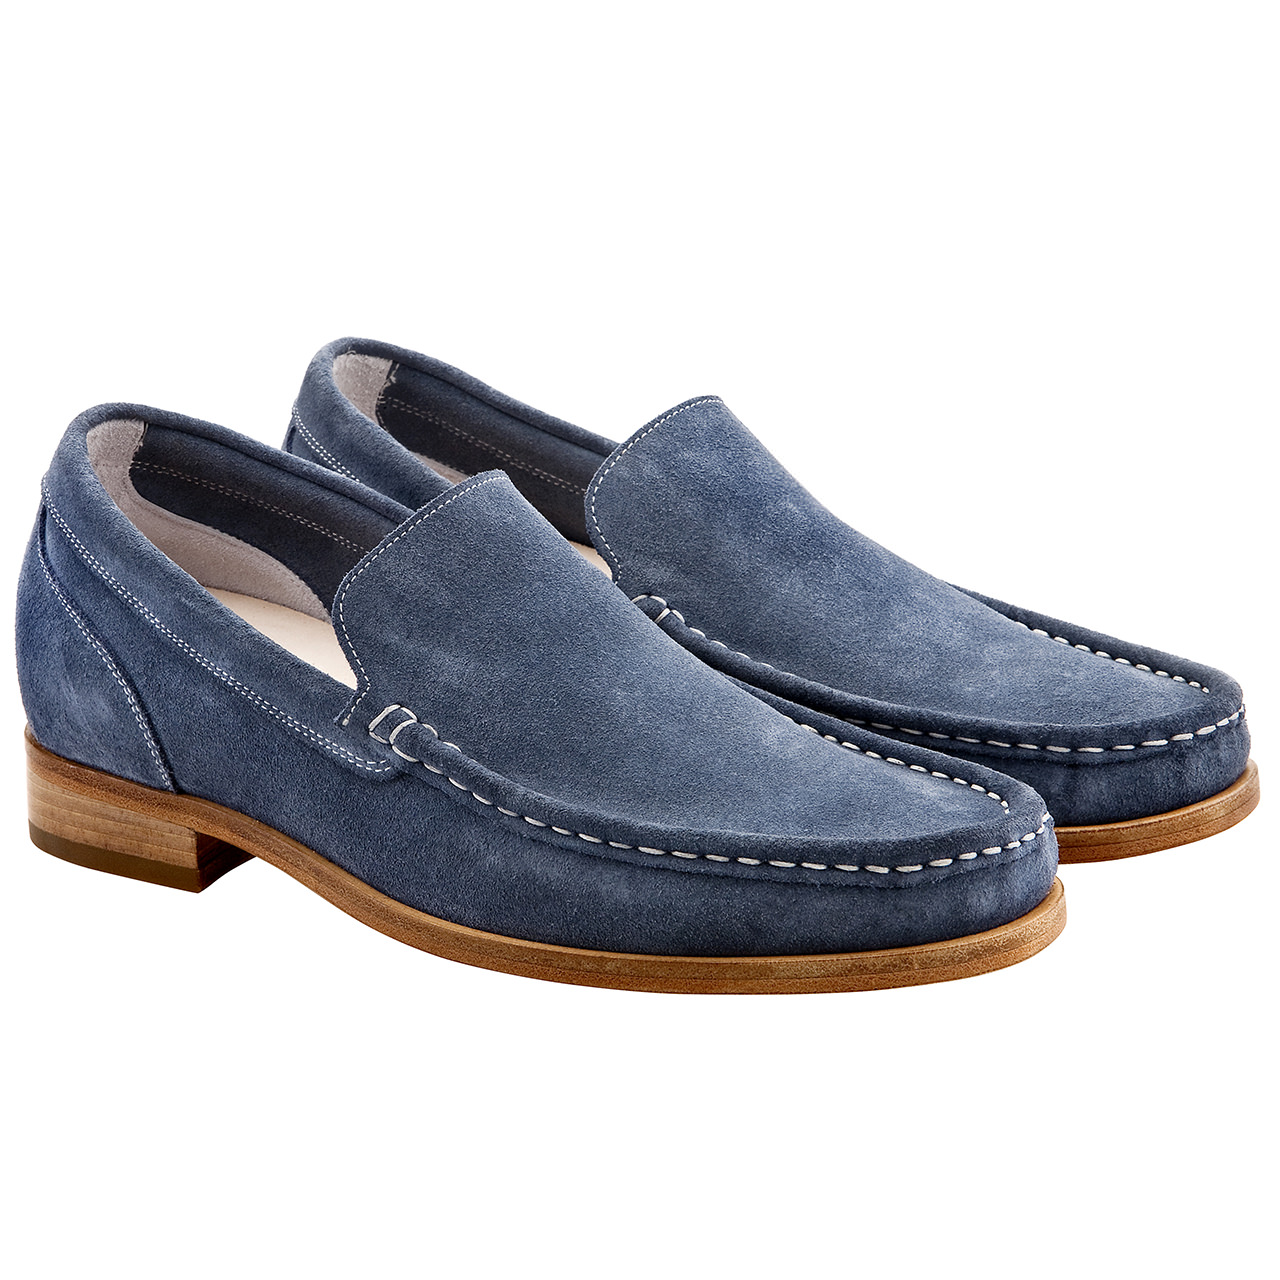 Loafers : Seville